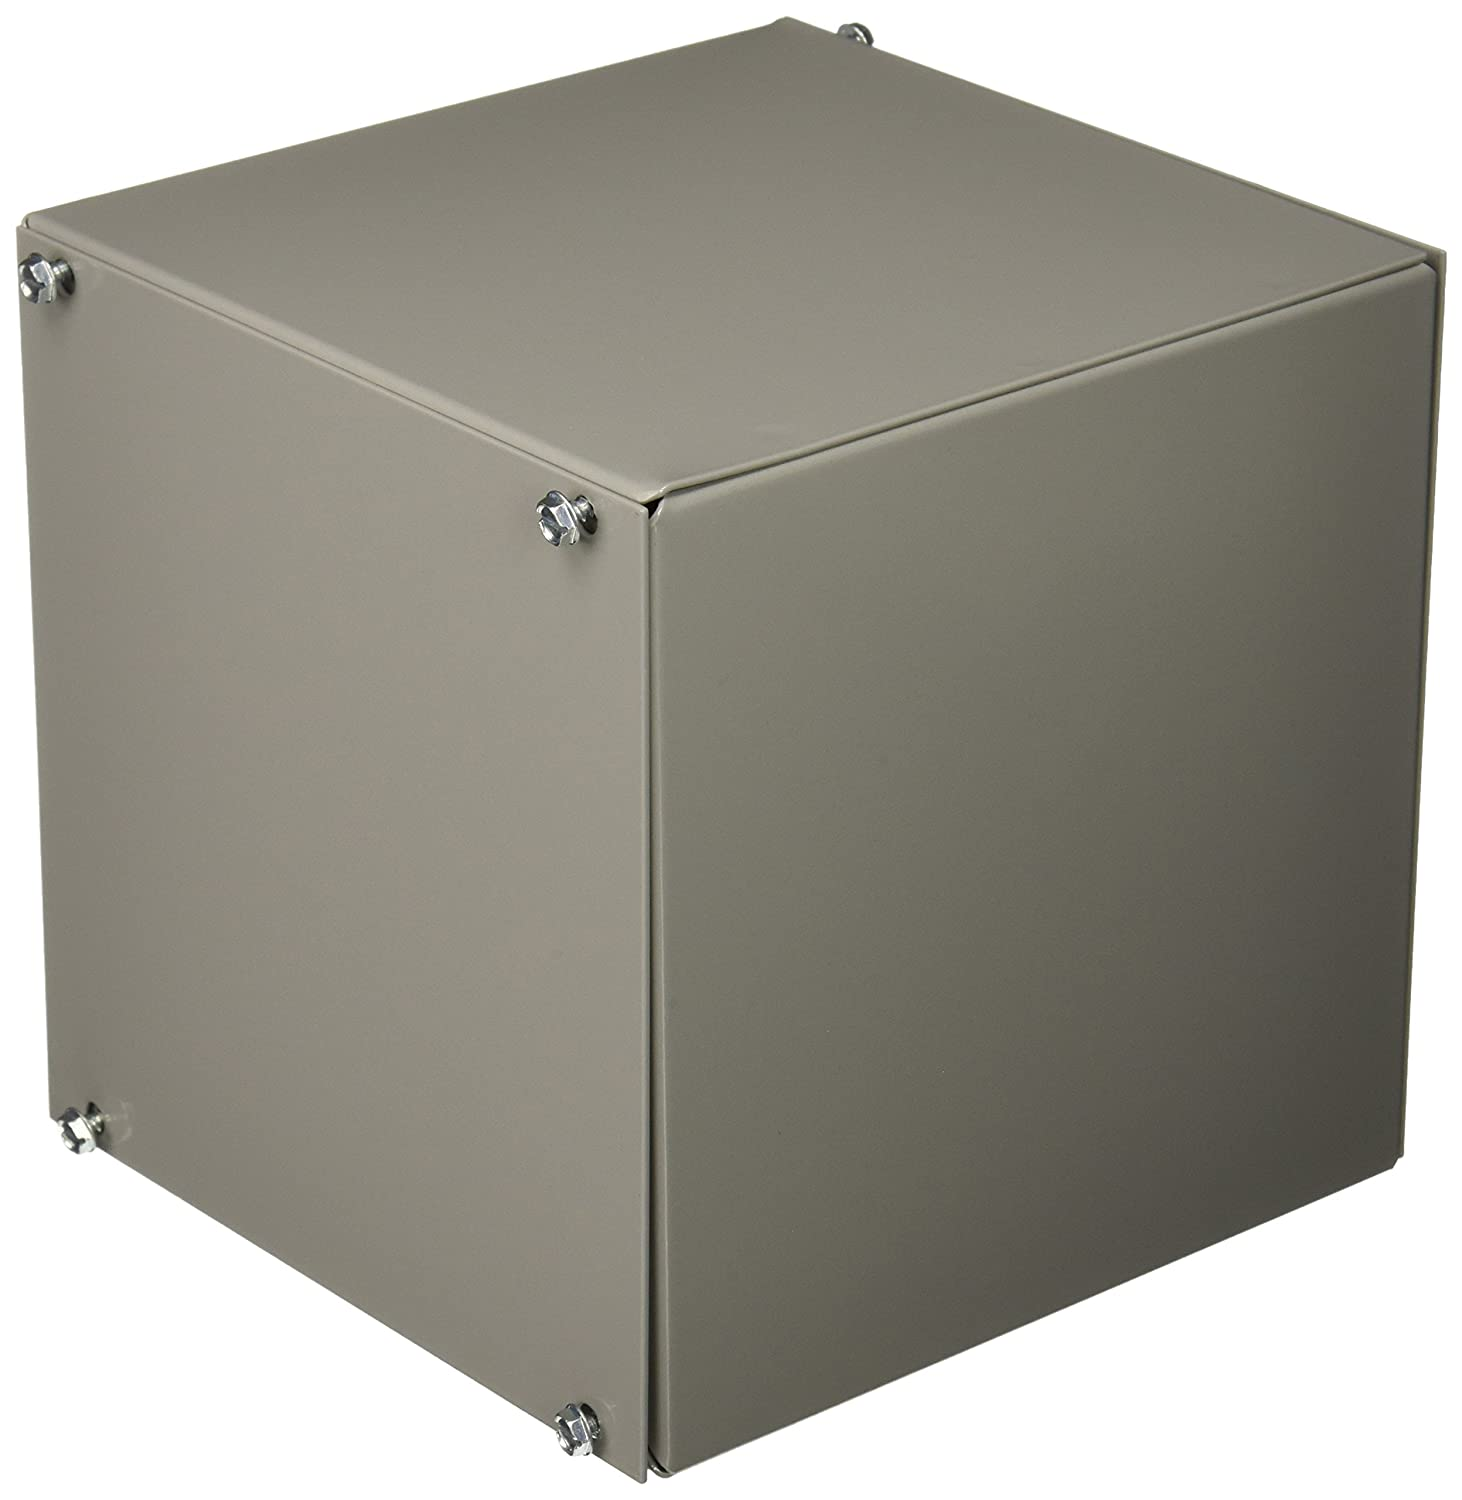 Natural Finish BUD Industries AU-1039 Aluminum Utility Cabinet 6 Width x 6 Height x 6 Depth